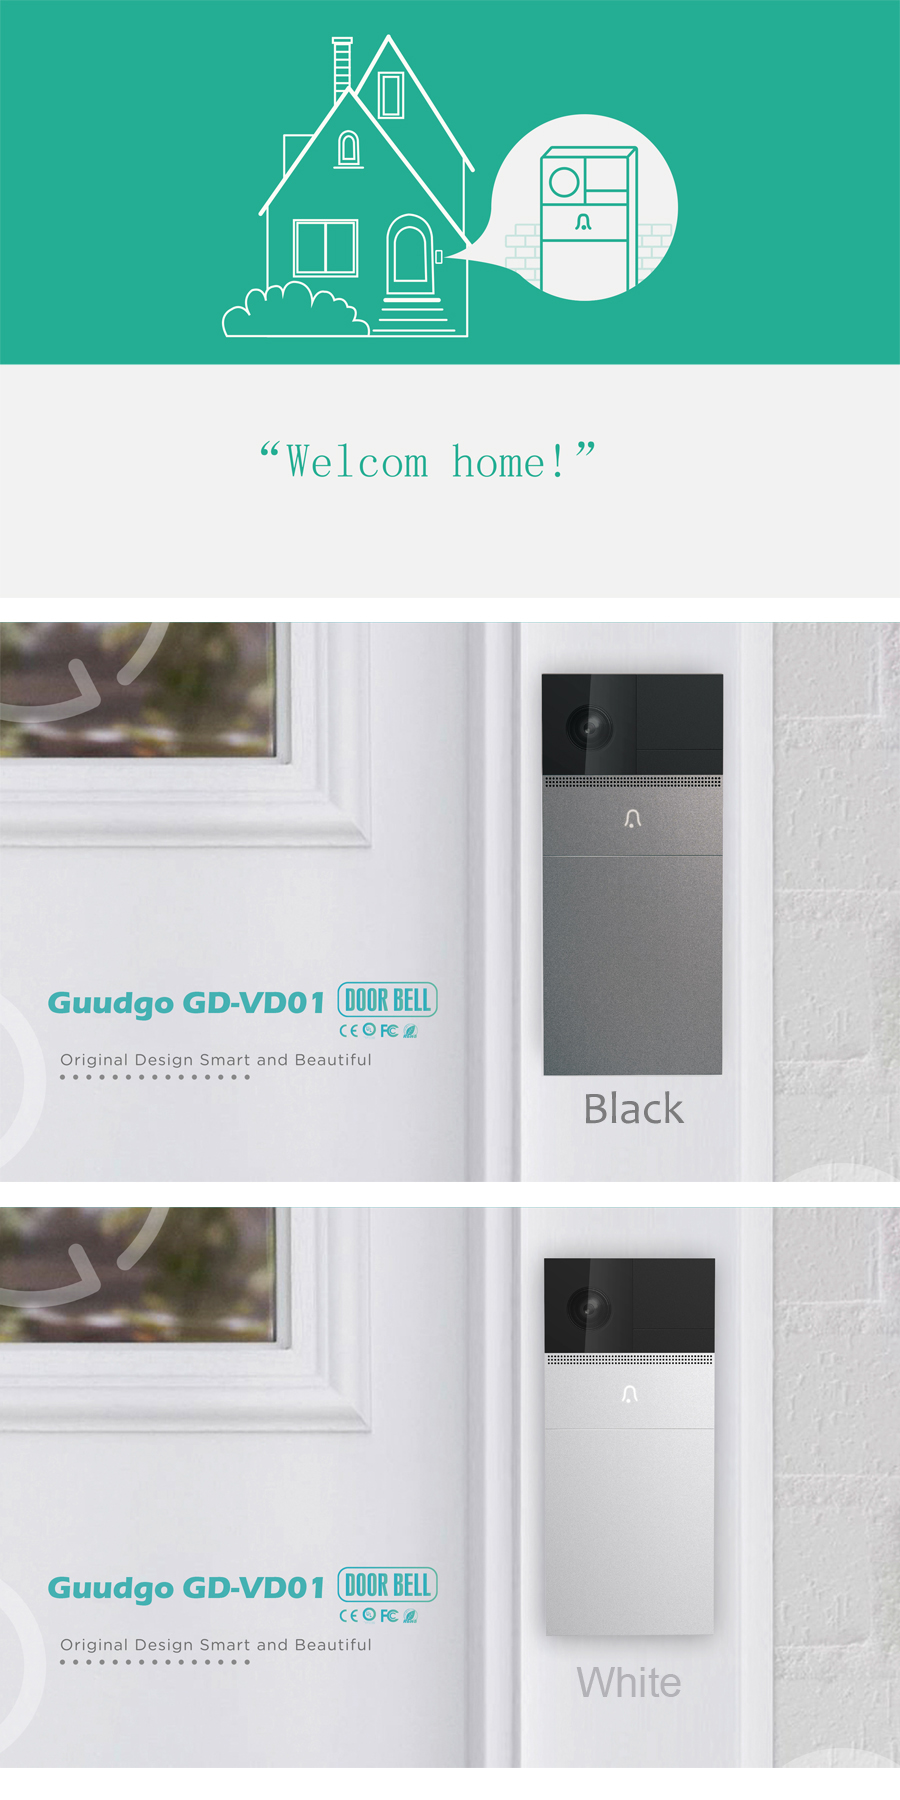 GUUDGO GD-VD01 Wireless Wifi Remote Waterproof Video Doorbell Camera Phone Visual Intercom Home Security Low Power Consumption 10 Months Standy Time